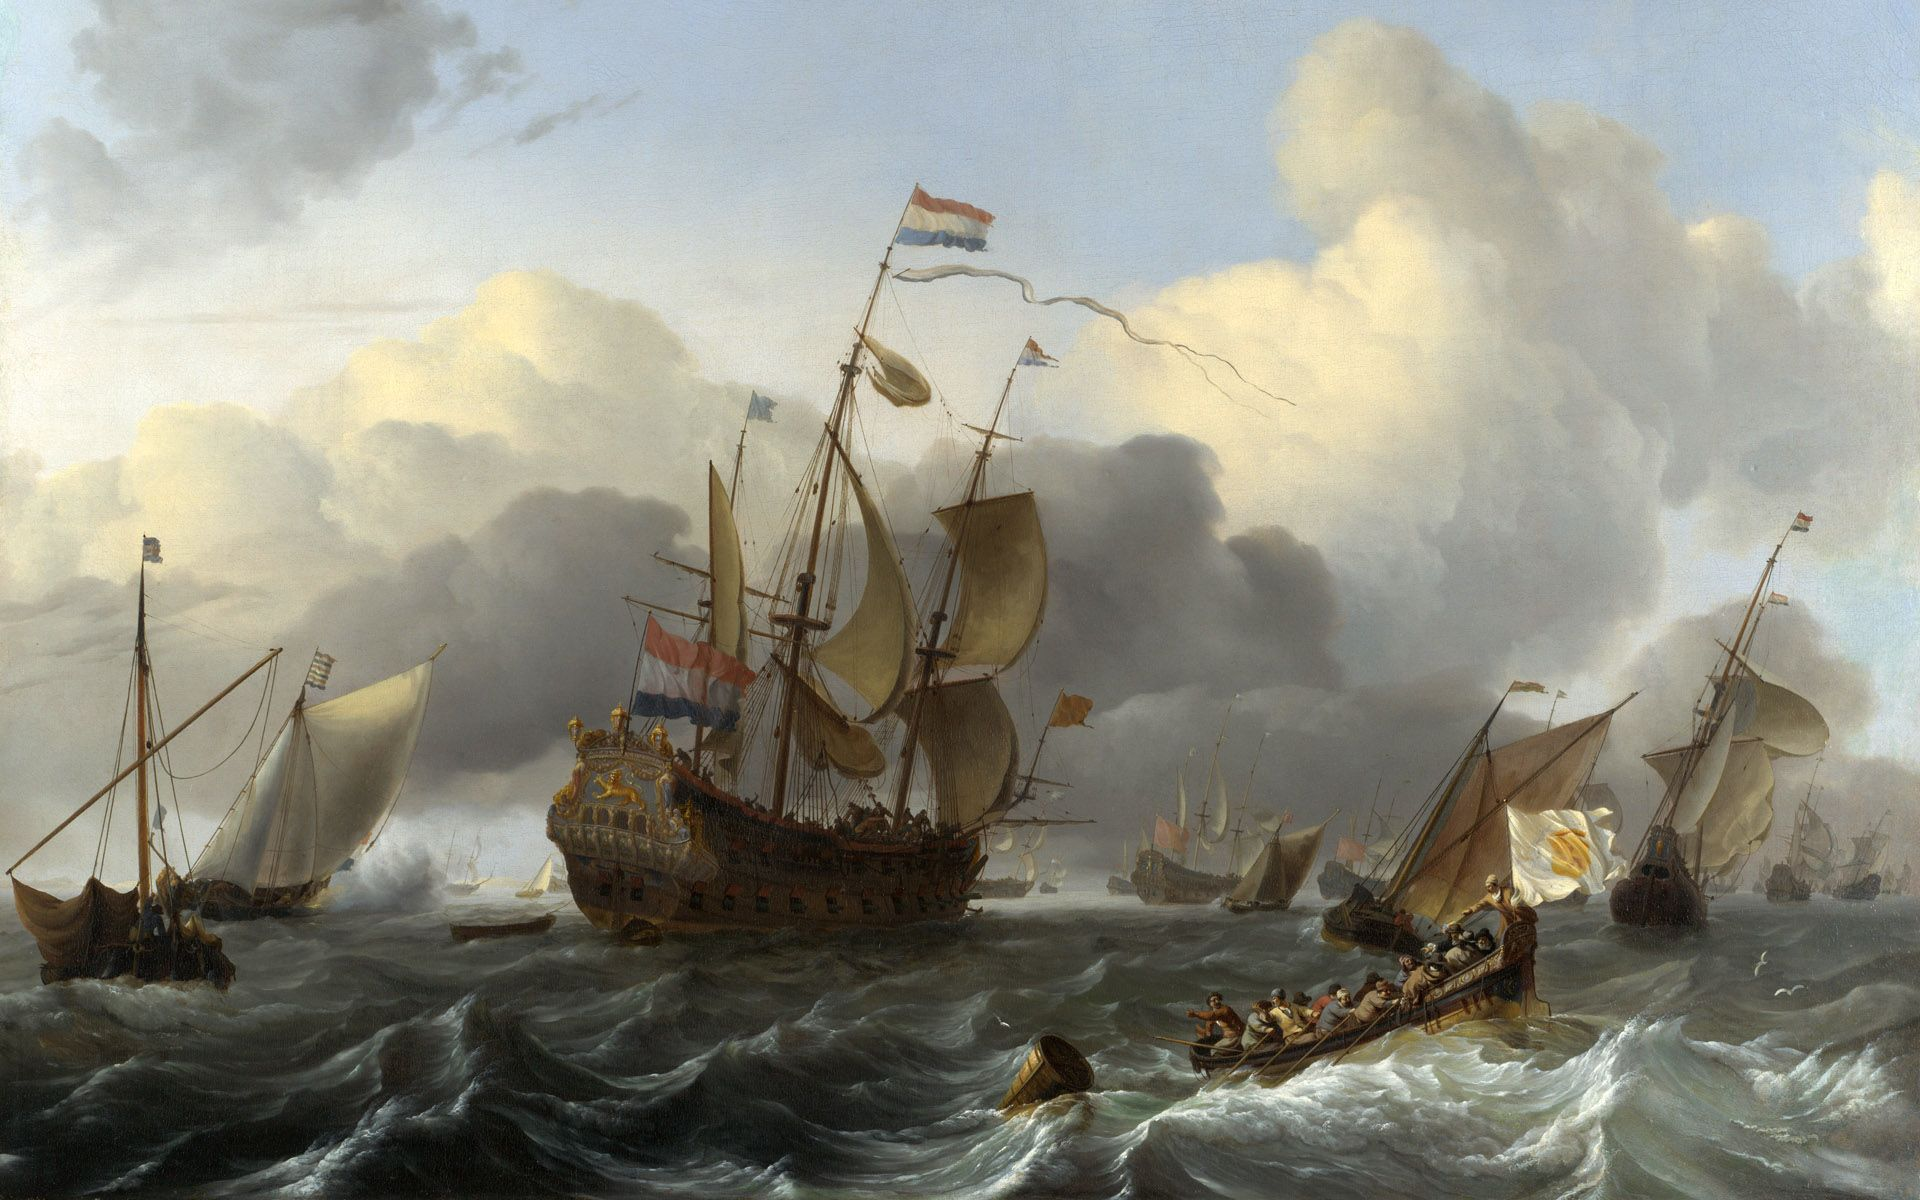 DUTCH SHIPS AT TABLE BAY AFRICA SEASCAPE OCEAN PAINTING ART REAL CANVAS PRINT